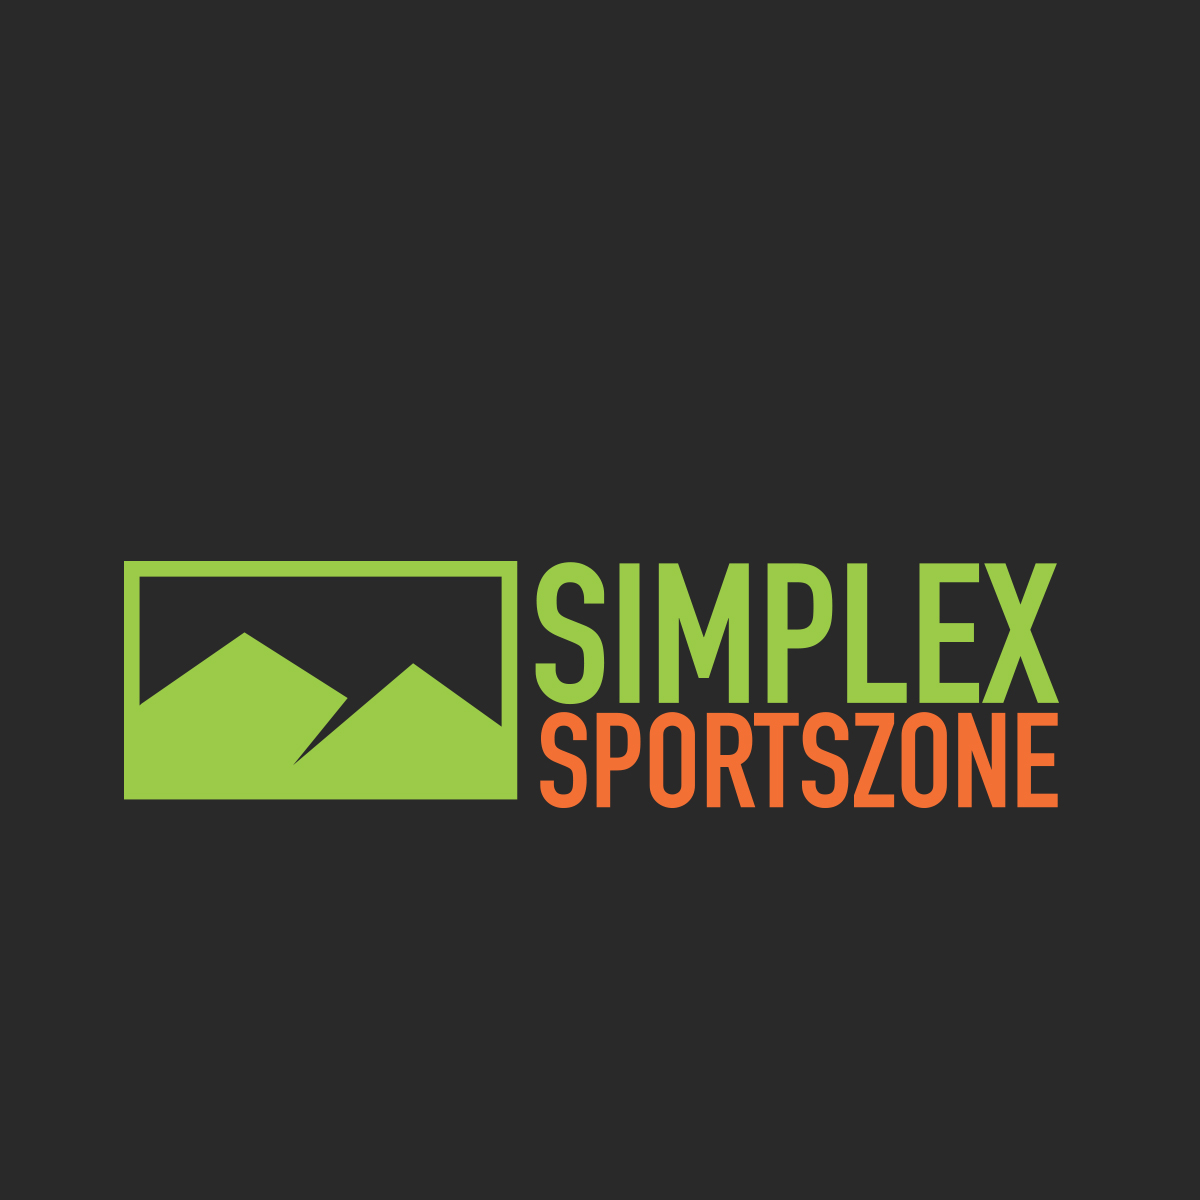 Bold, Playful Logo Design for Simplex Sportszone by alvinfrancis